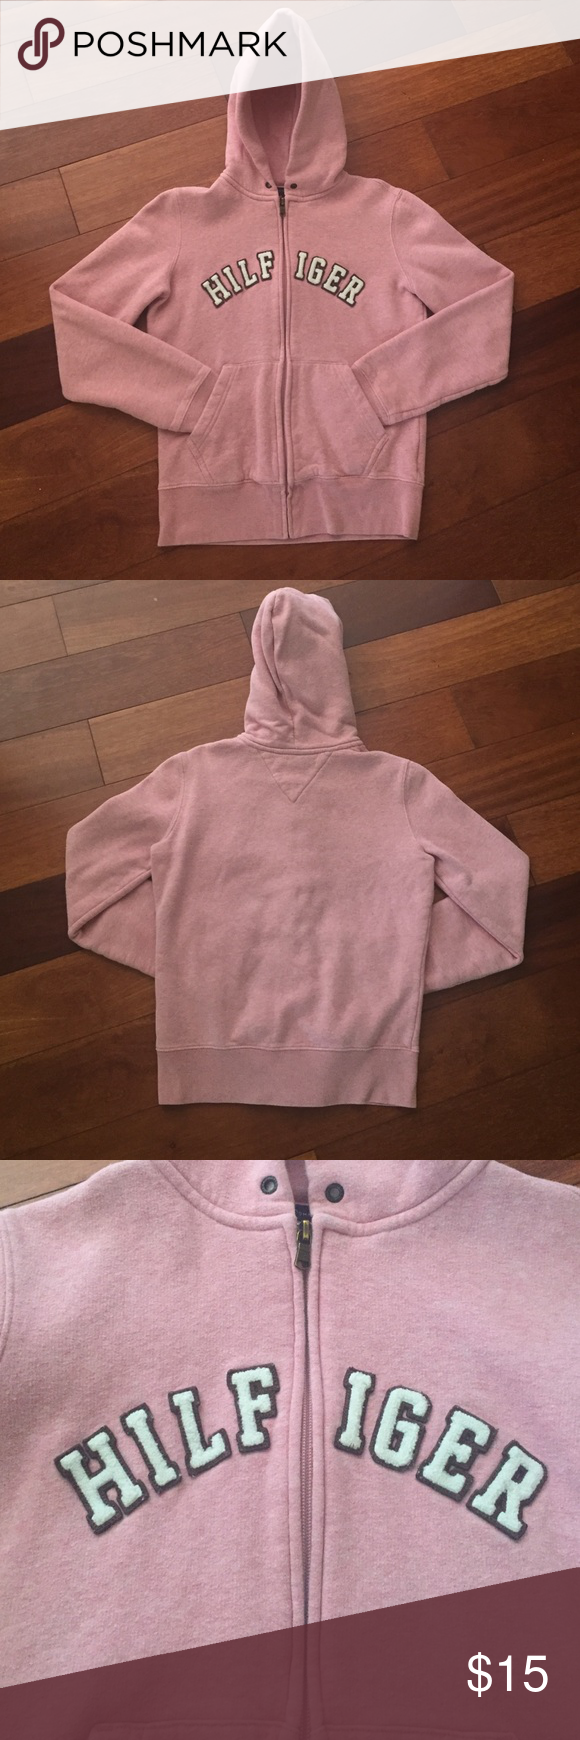 e7a6a780bfa Tommy Hilfiger Sweatshirt!! Pink Tommy Hilfiger Zip-Up Hooded Sweatshirt!  In White Across The Chest Is The Word HILFIGER! Two Pockets in the Front,  ...